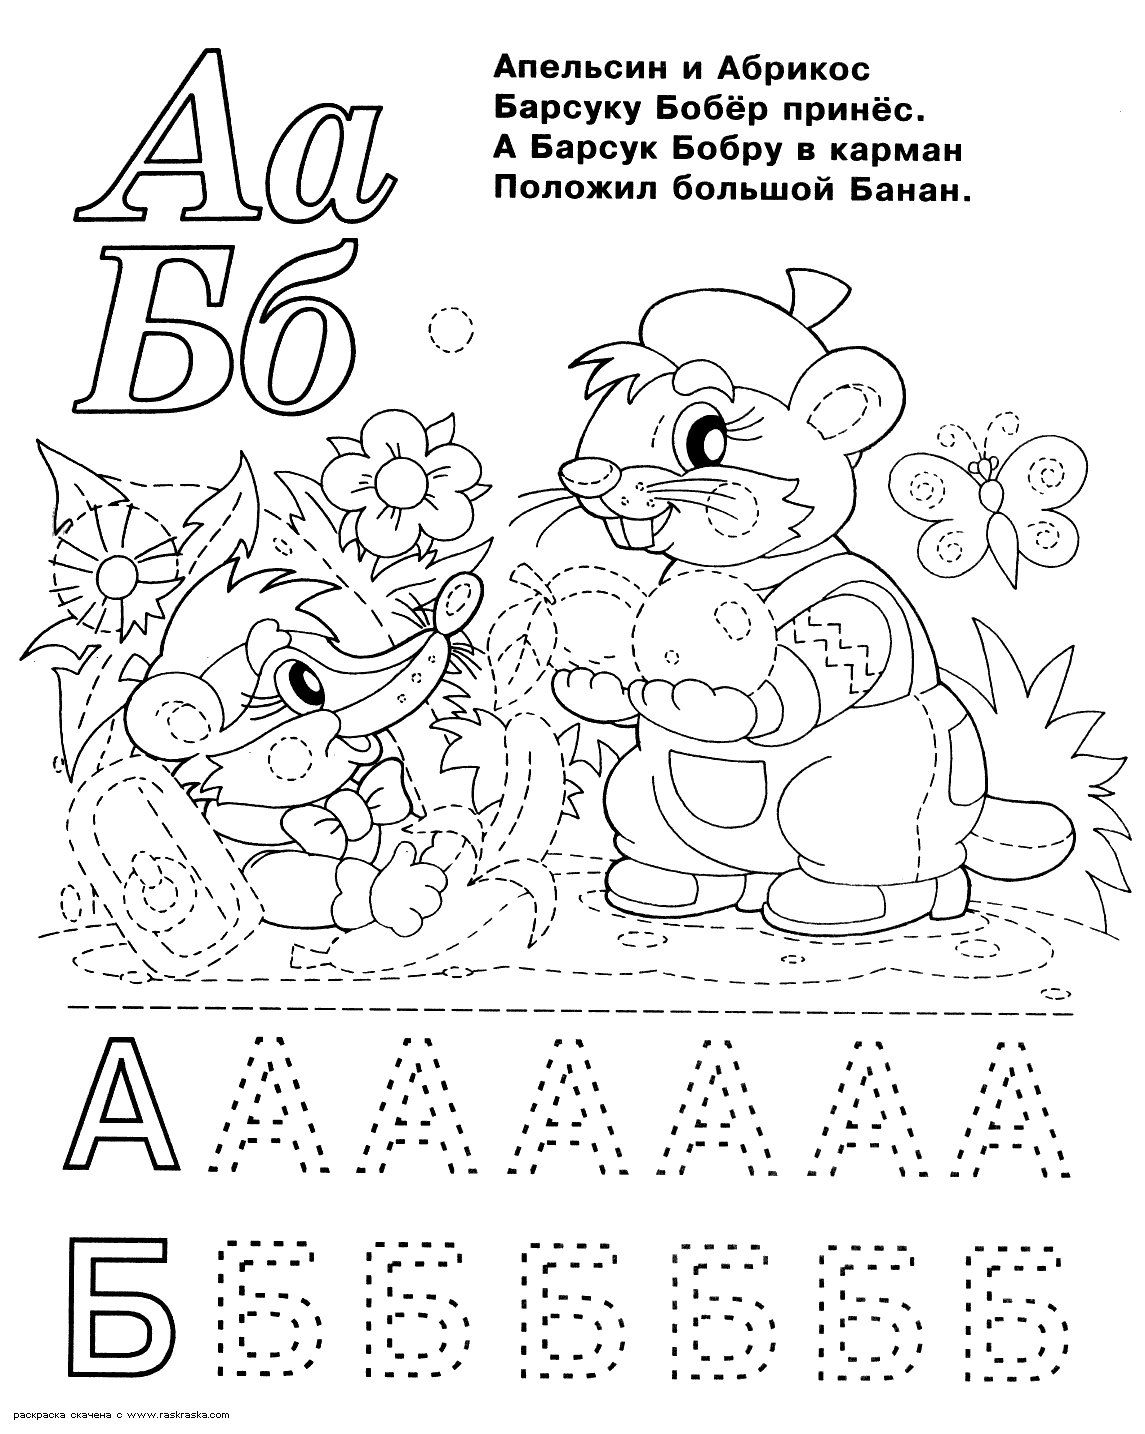 It is an image of Comprehensive Printable Russian Alphabet